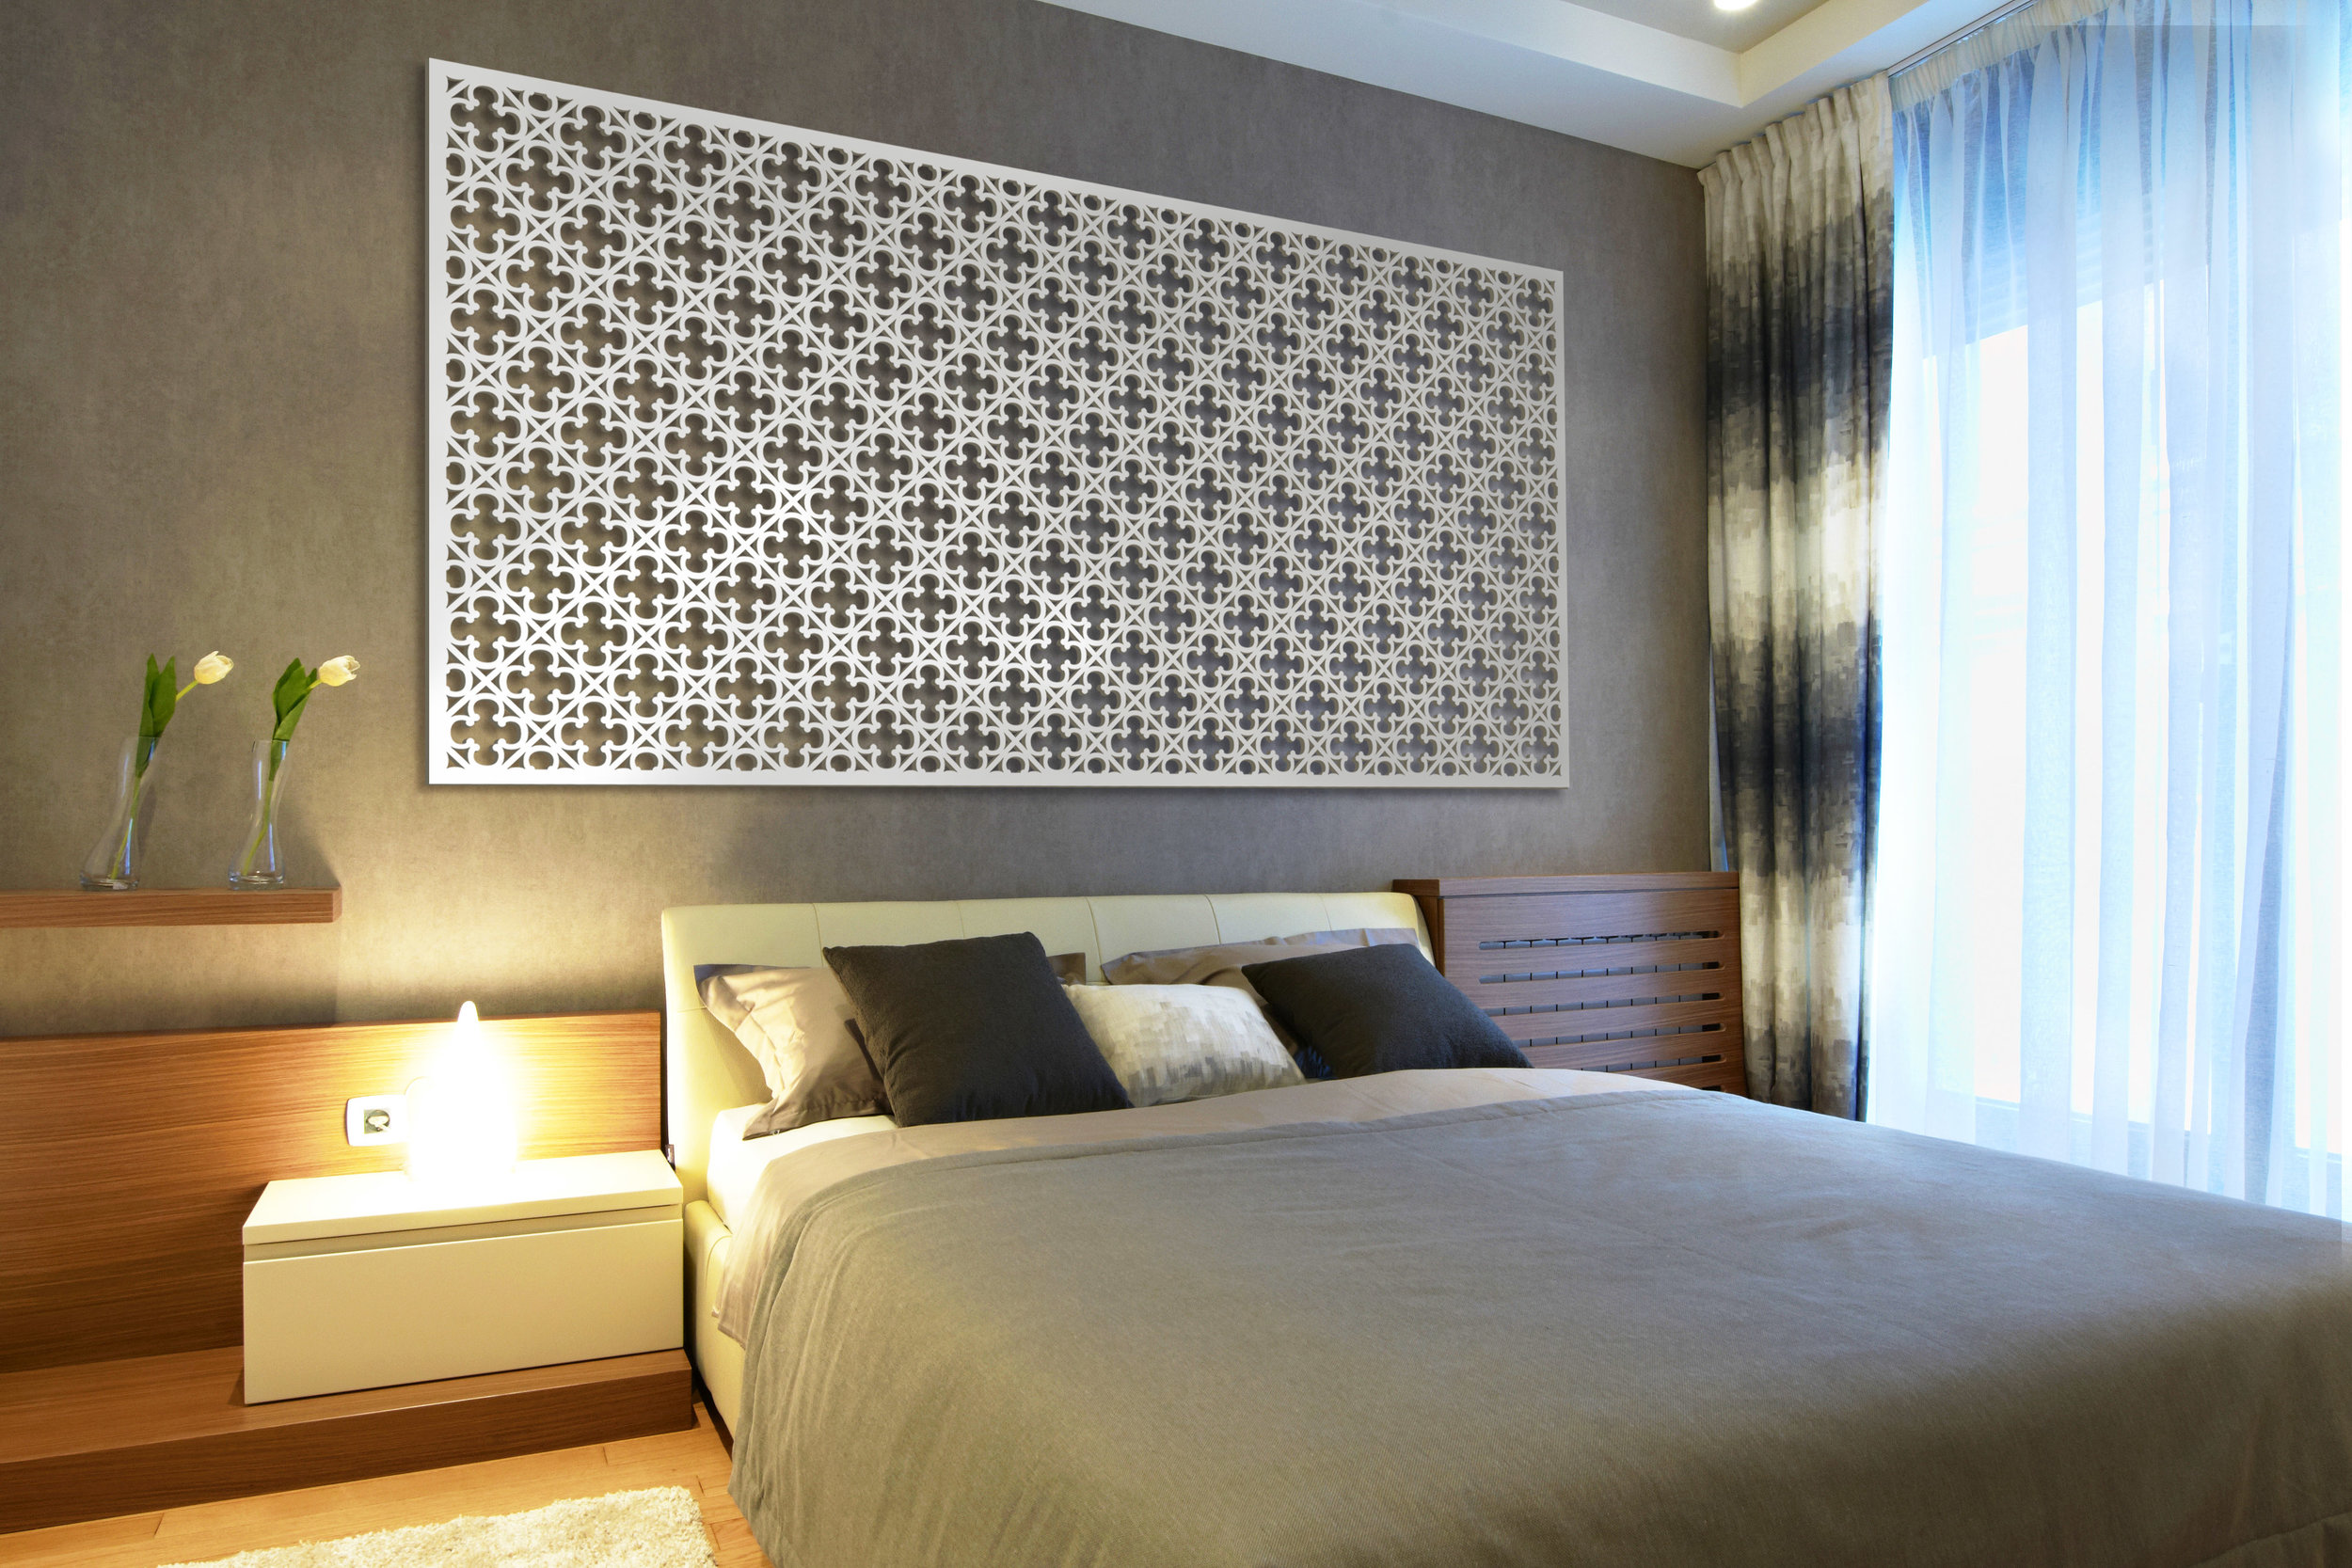 Installation Rendering C   Gothic Grille decorative hotel wall panel - painted